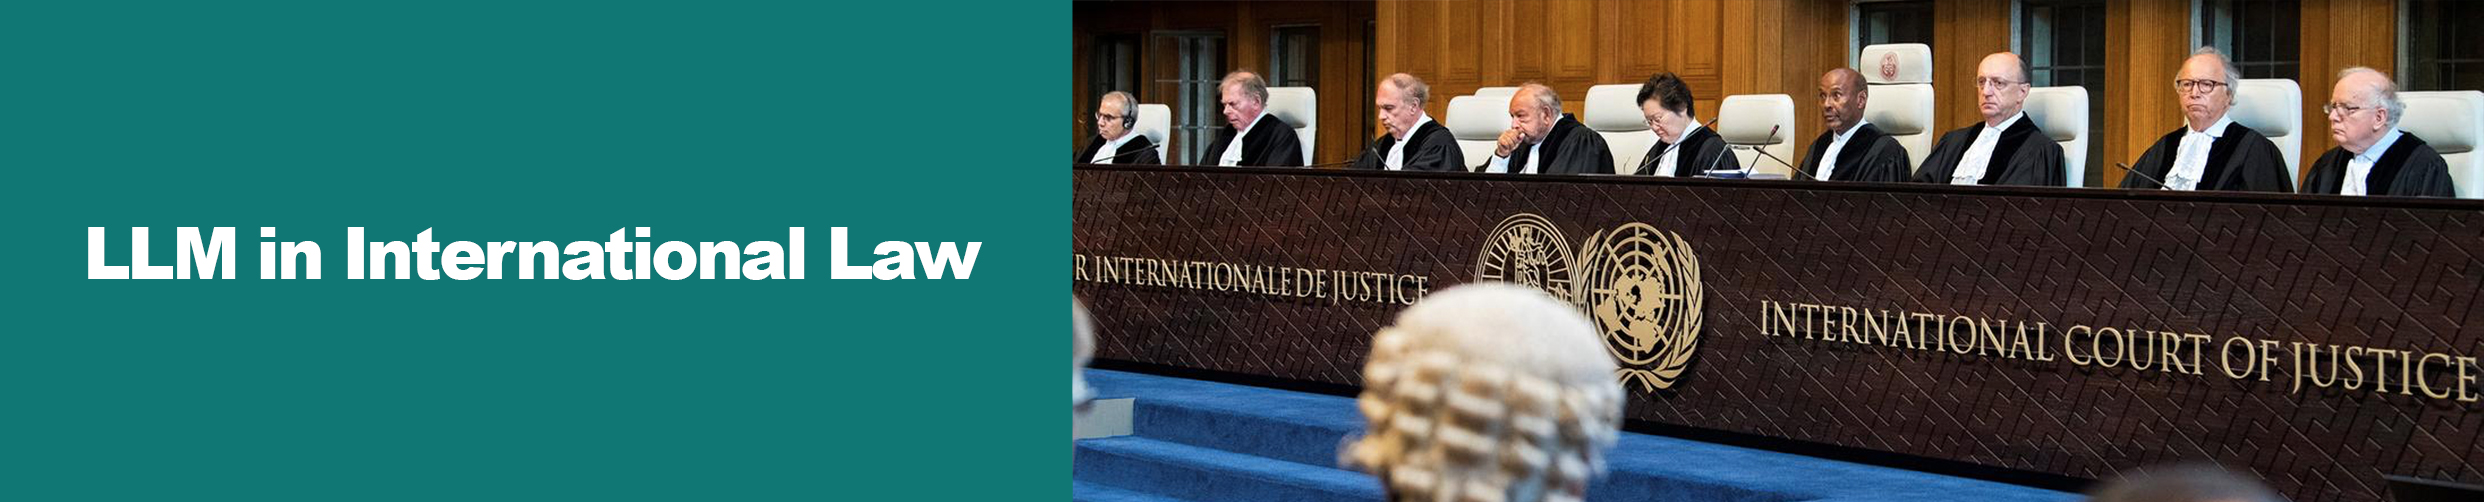 Master of Laws (LLM) in International Law